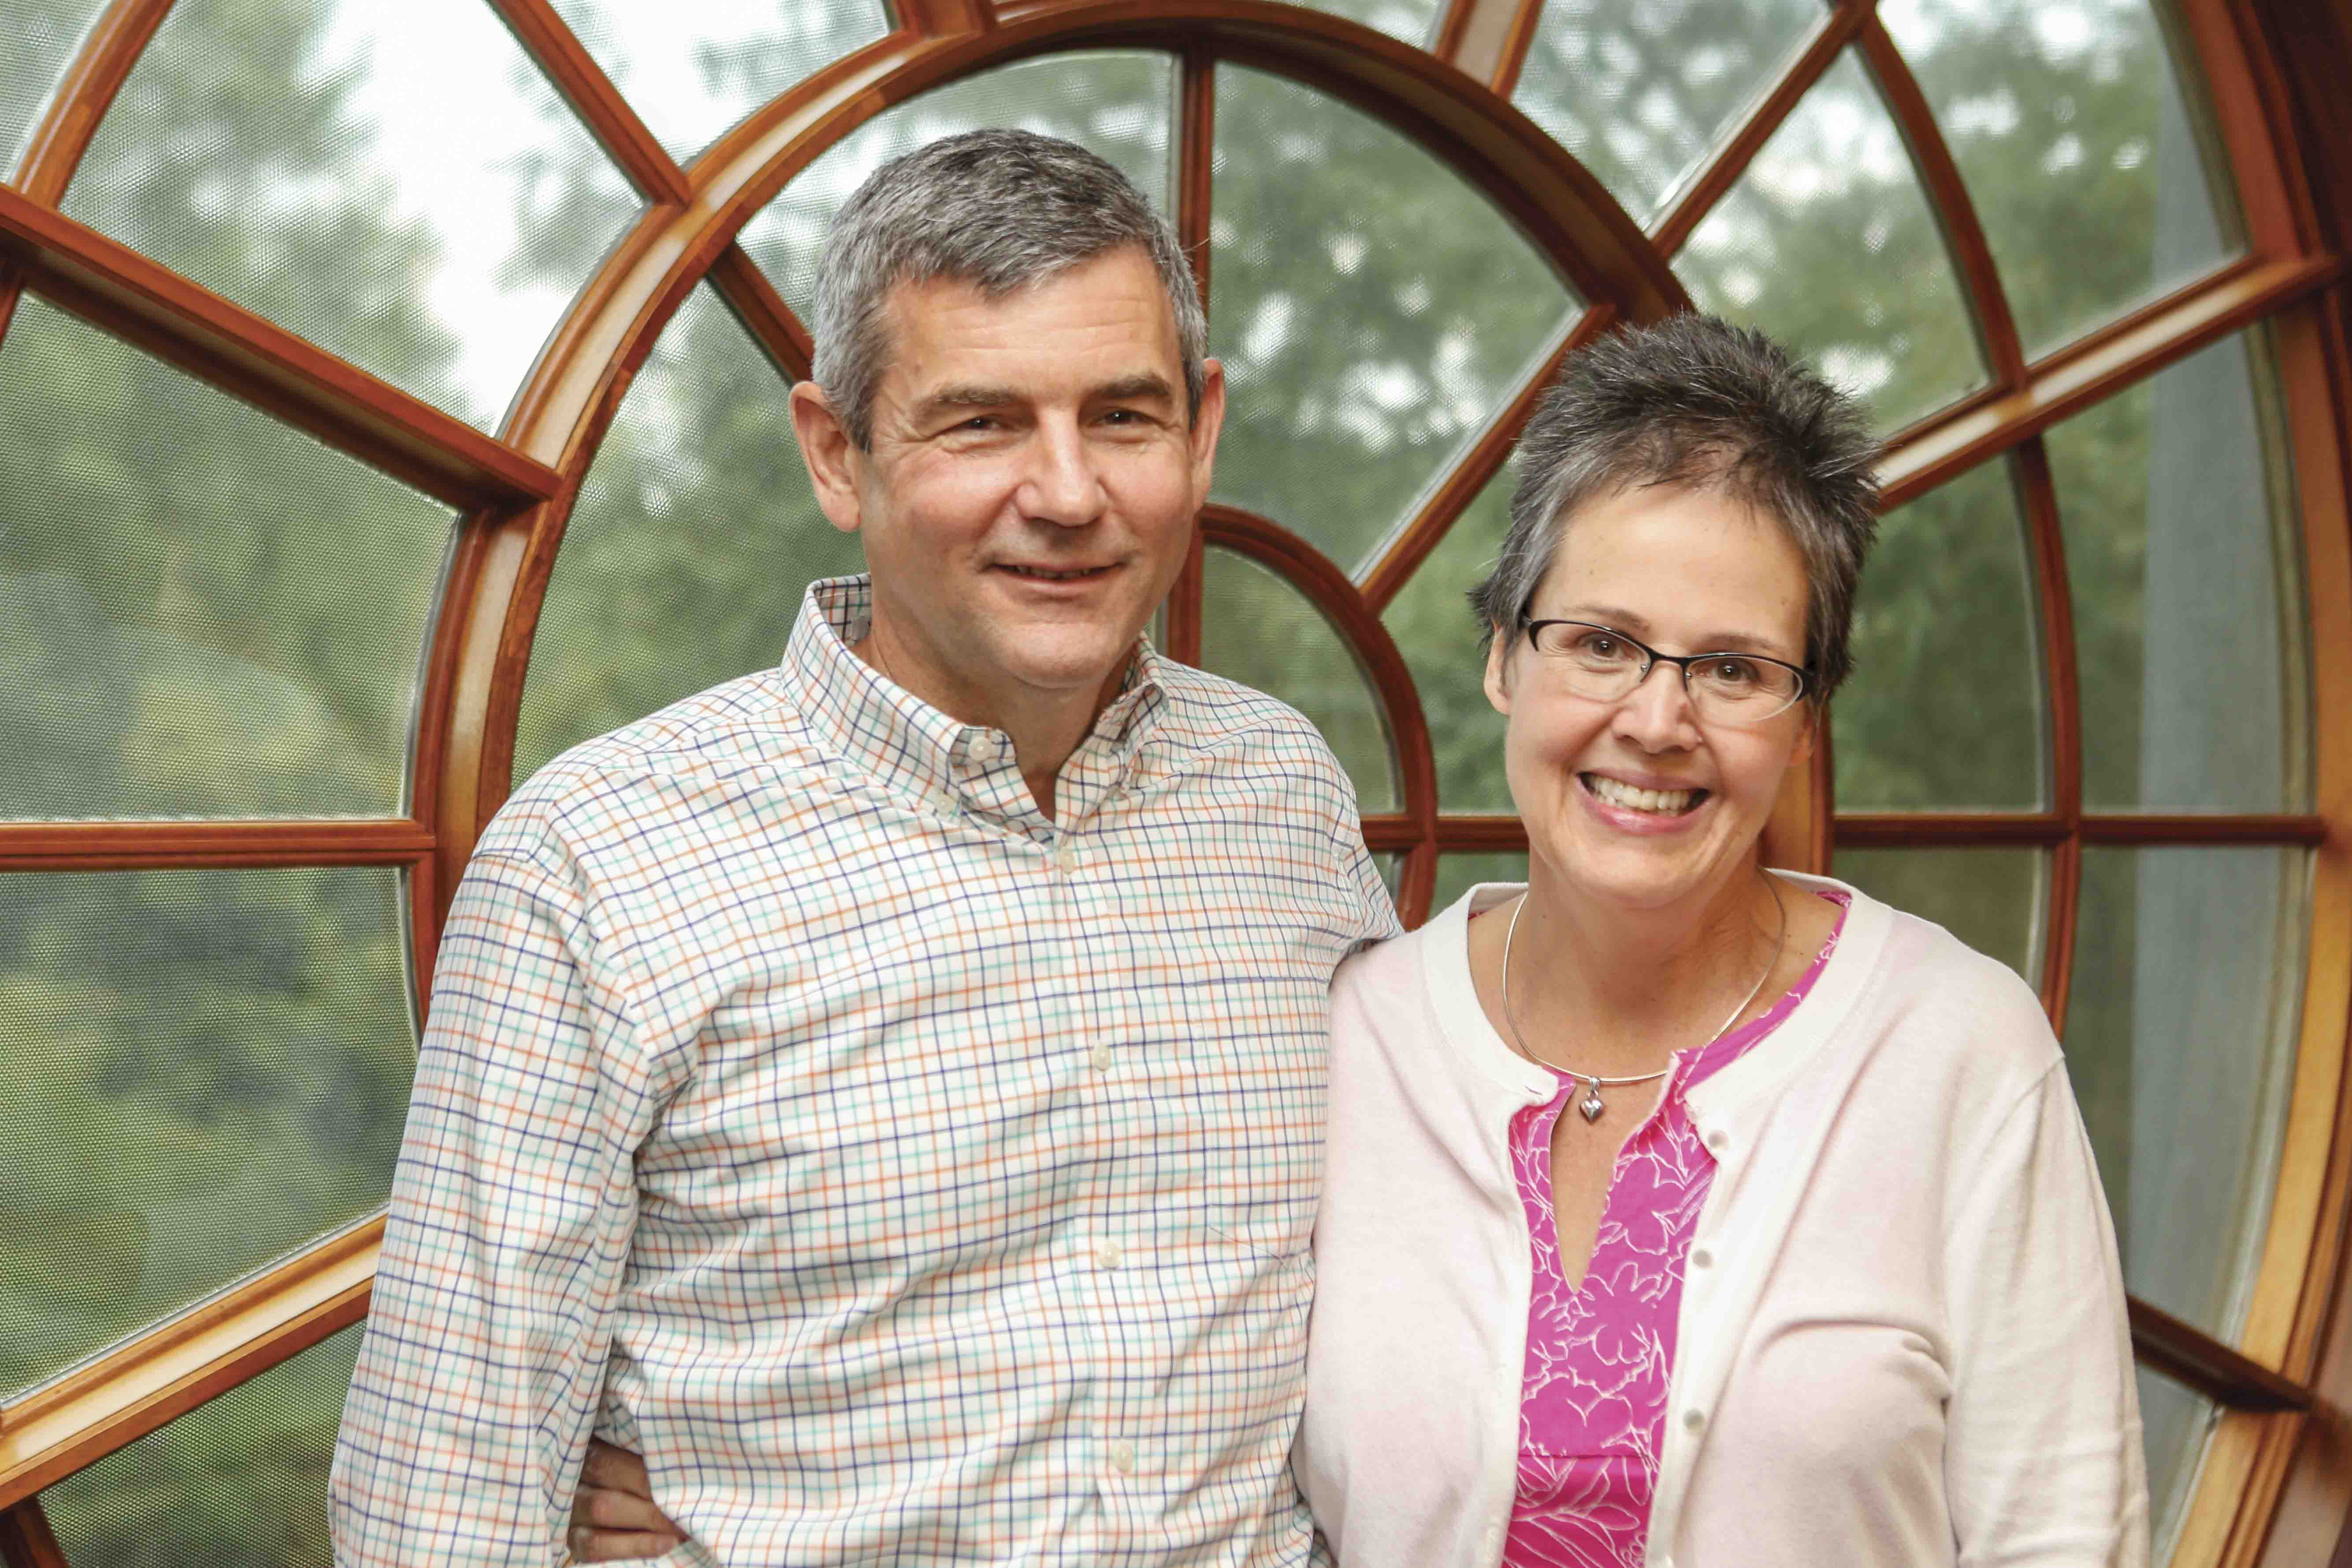 BENEFACTORS: Mike Petters M.B.A. '93 and Nancy Briggs Petters '81 recently provided a $1 million gift to Camp Launch to support the program going into the future.